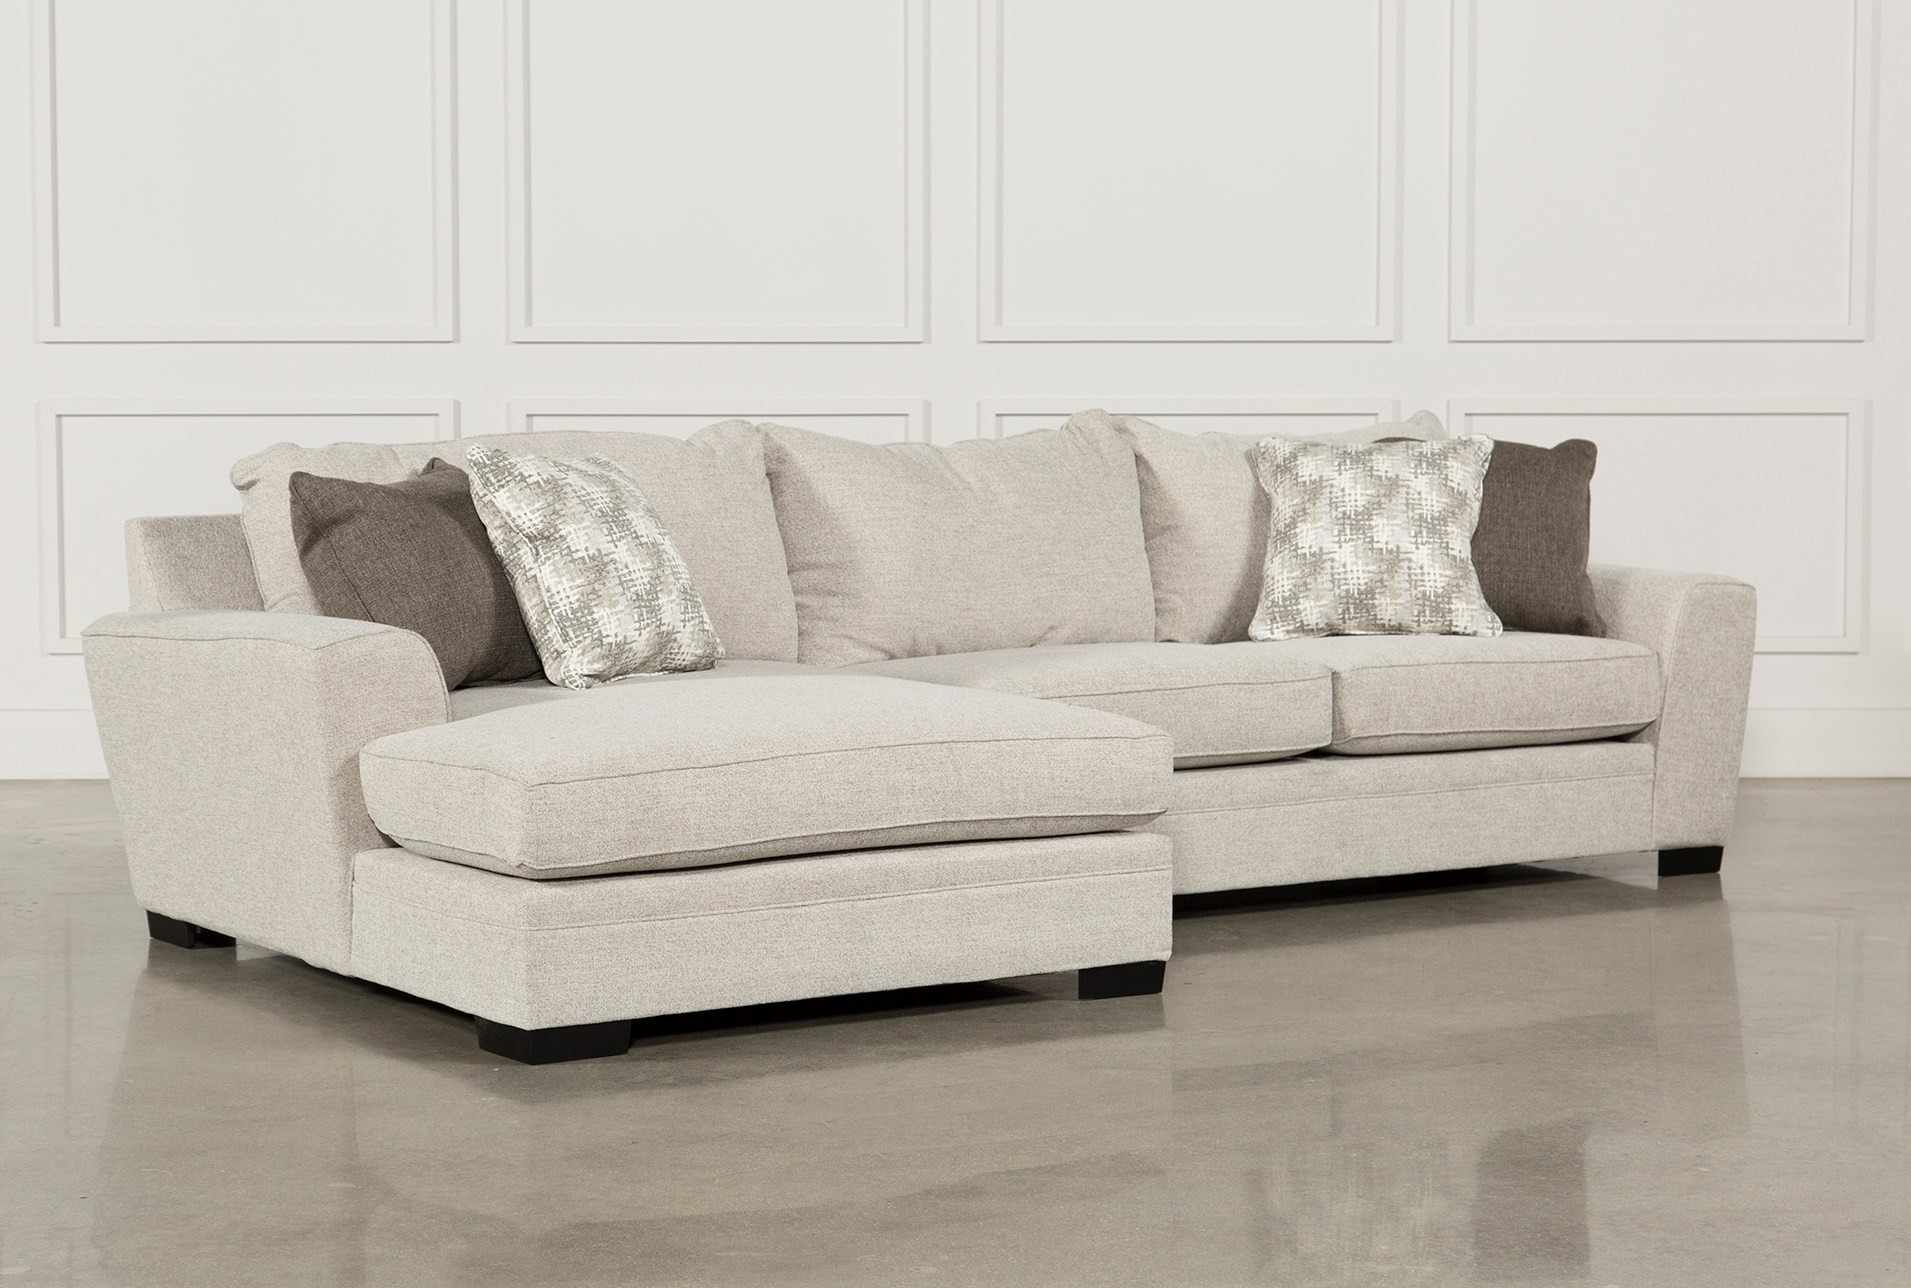 Living Spaces Sectional Couches Josephine 2 Piece W Raf Sofa 222882 Intended For Josephine 2 Piece Sectionals With Laf Sofa (View 15 of 25)